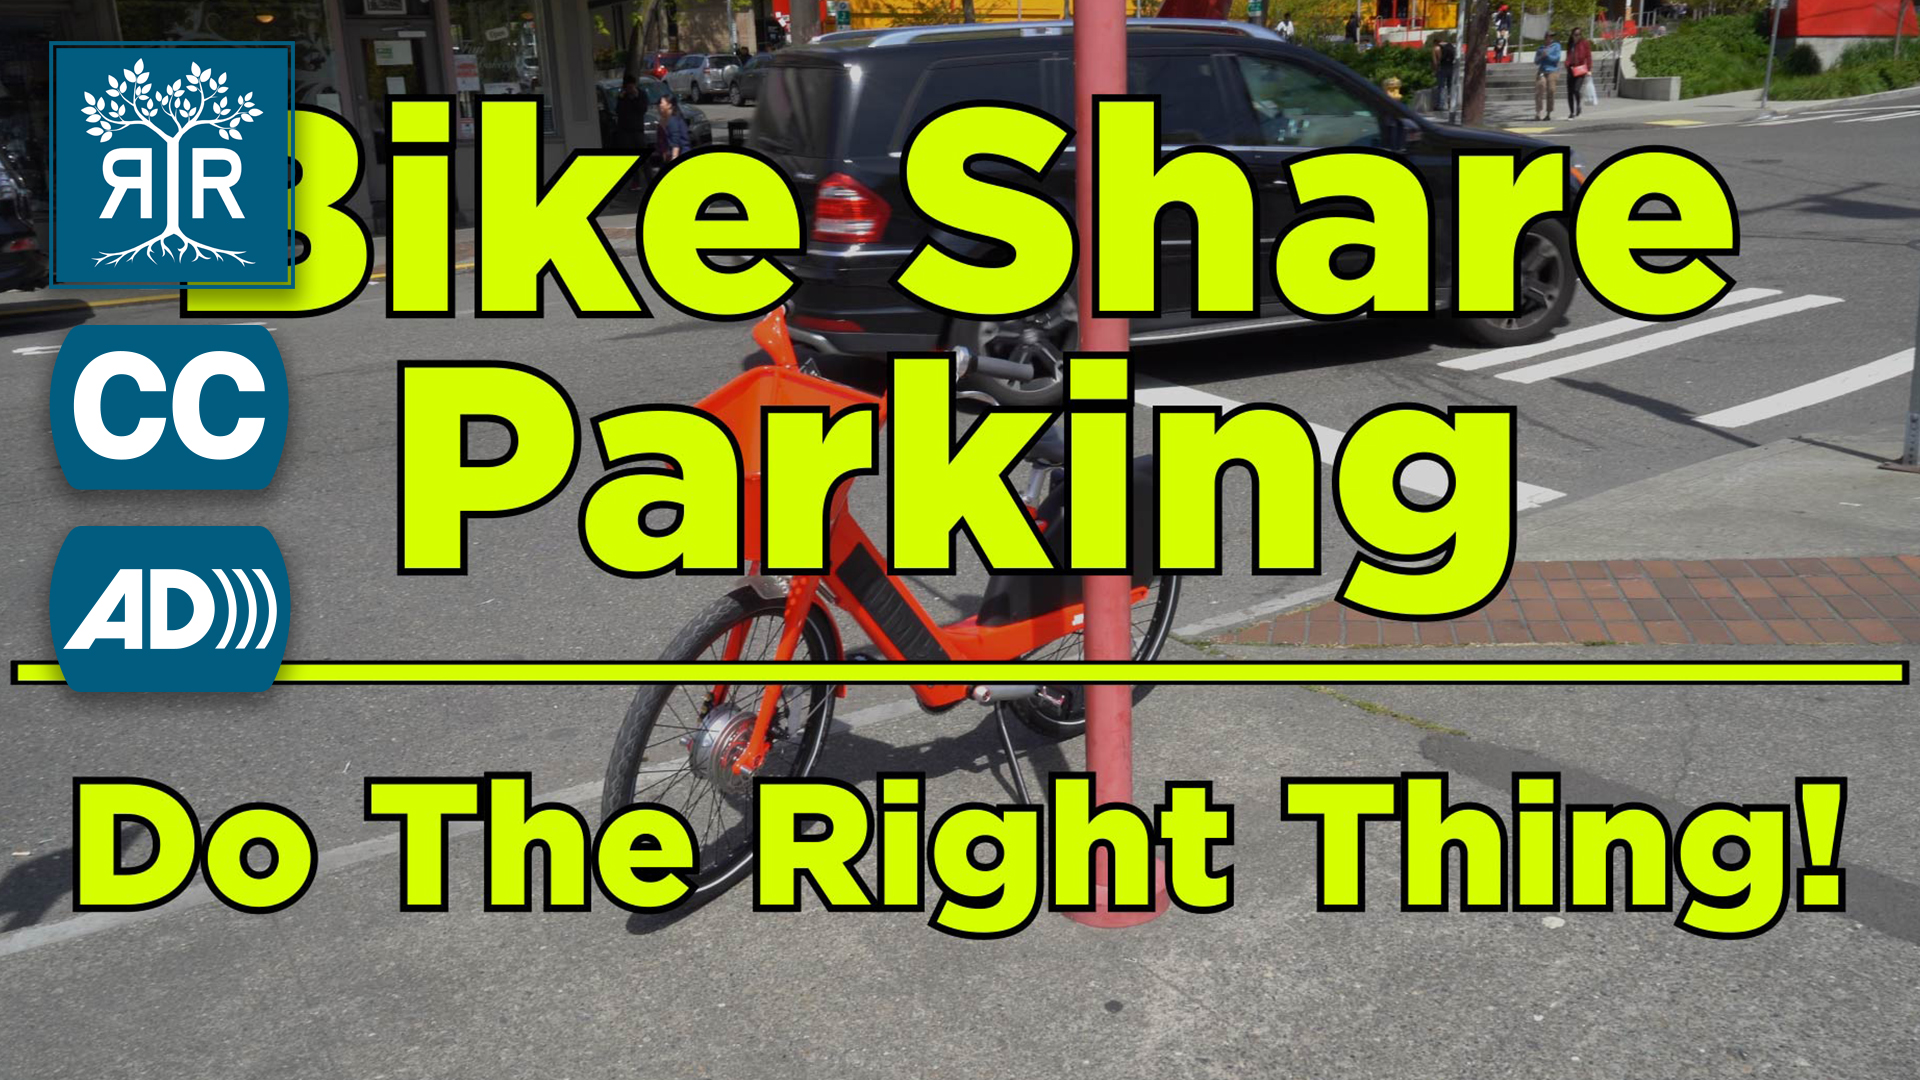 Image of a busy street. A car is in the right lane and a bike is resting against a pole on the sidewalk. The following words appear in yellow font: Bike Share Parking: Do The Right Thing